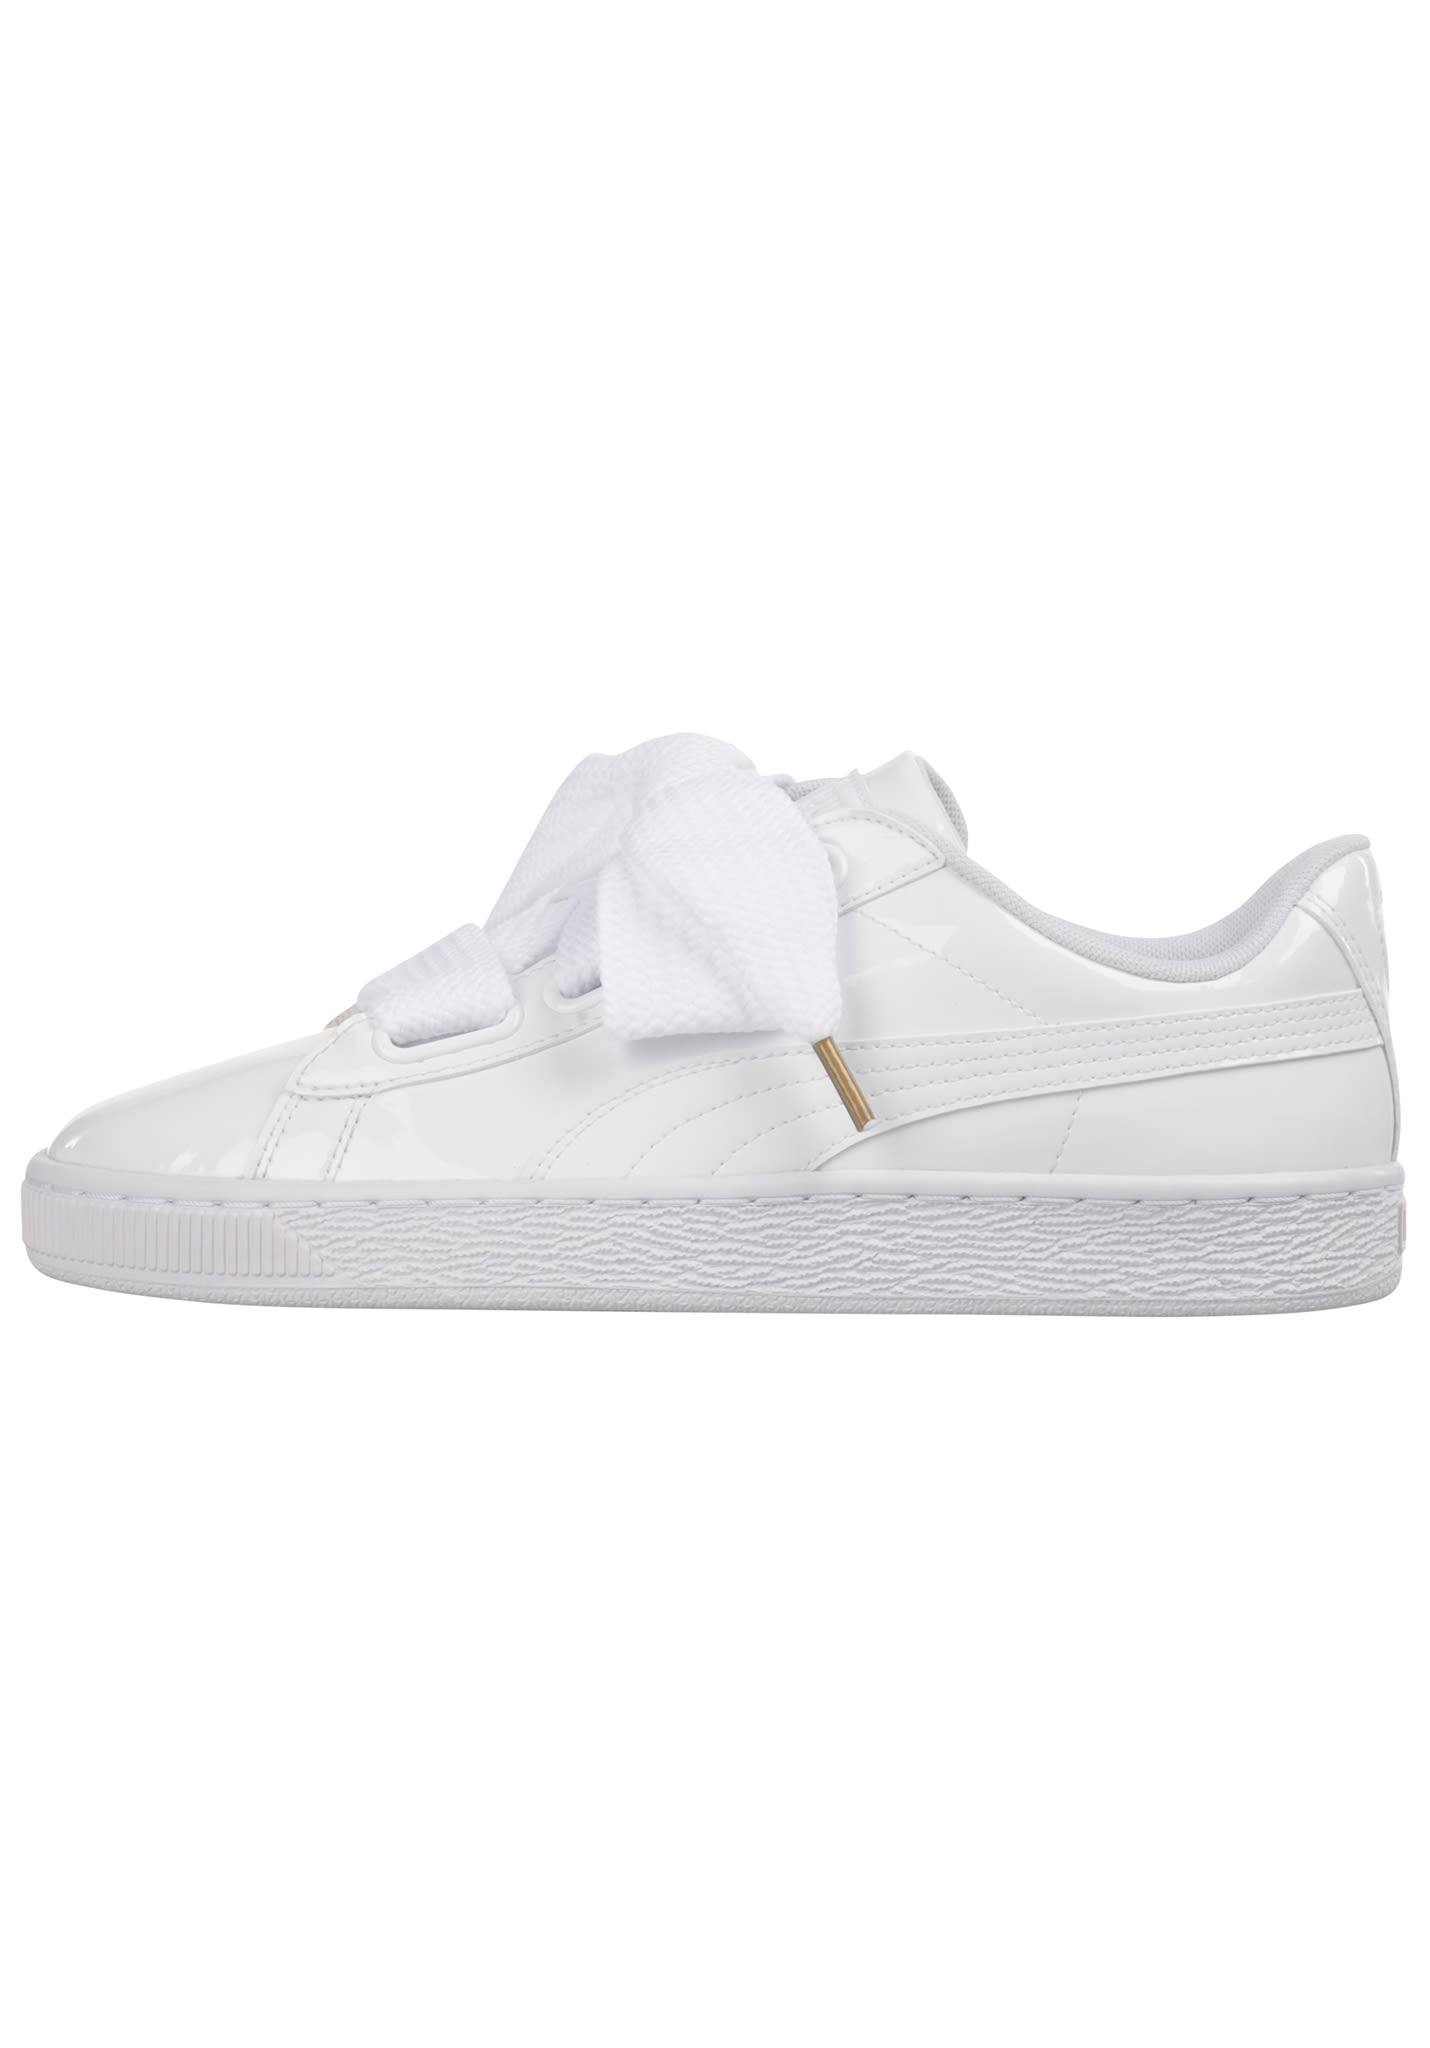 Puma Basket Heart Patent - Sneakers for Women - White - Planet Sports 305c0a5e5